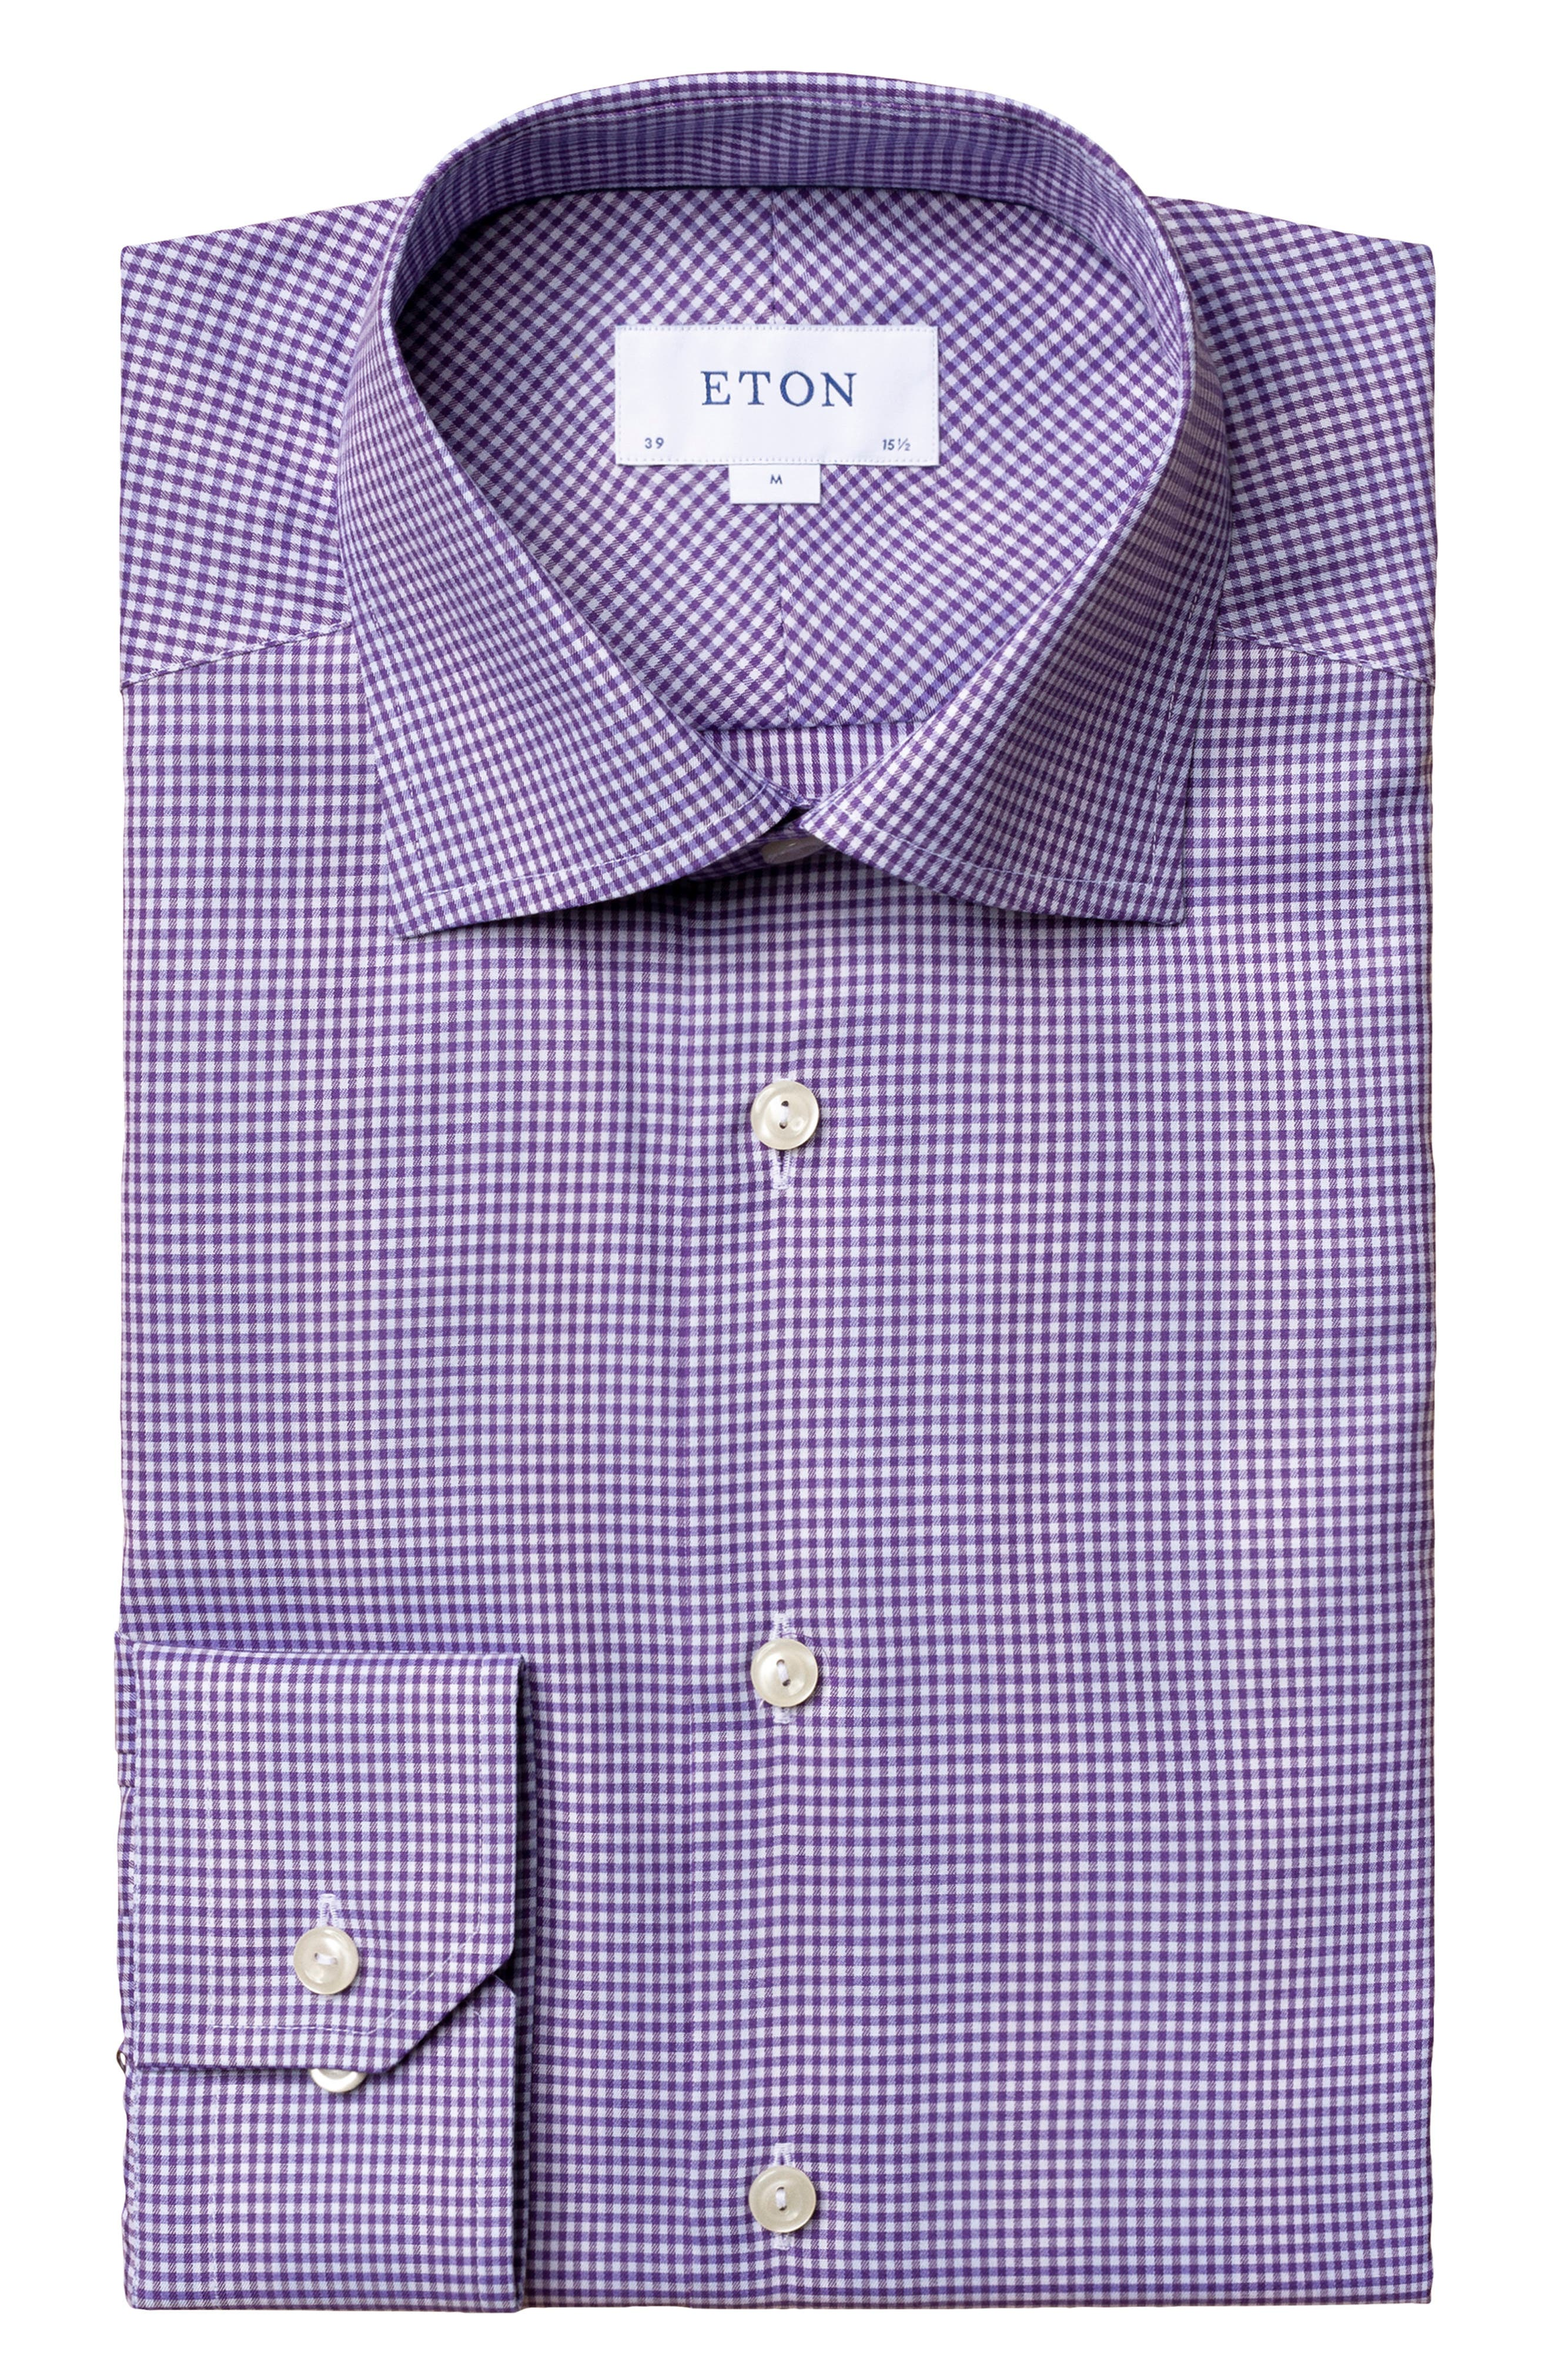 Image of Eton Contemporary Fit Check Dress Shirt